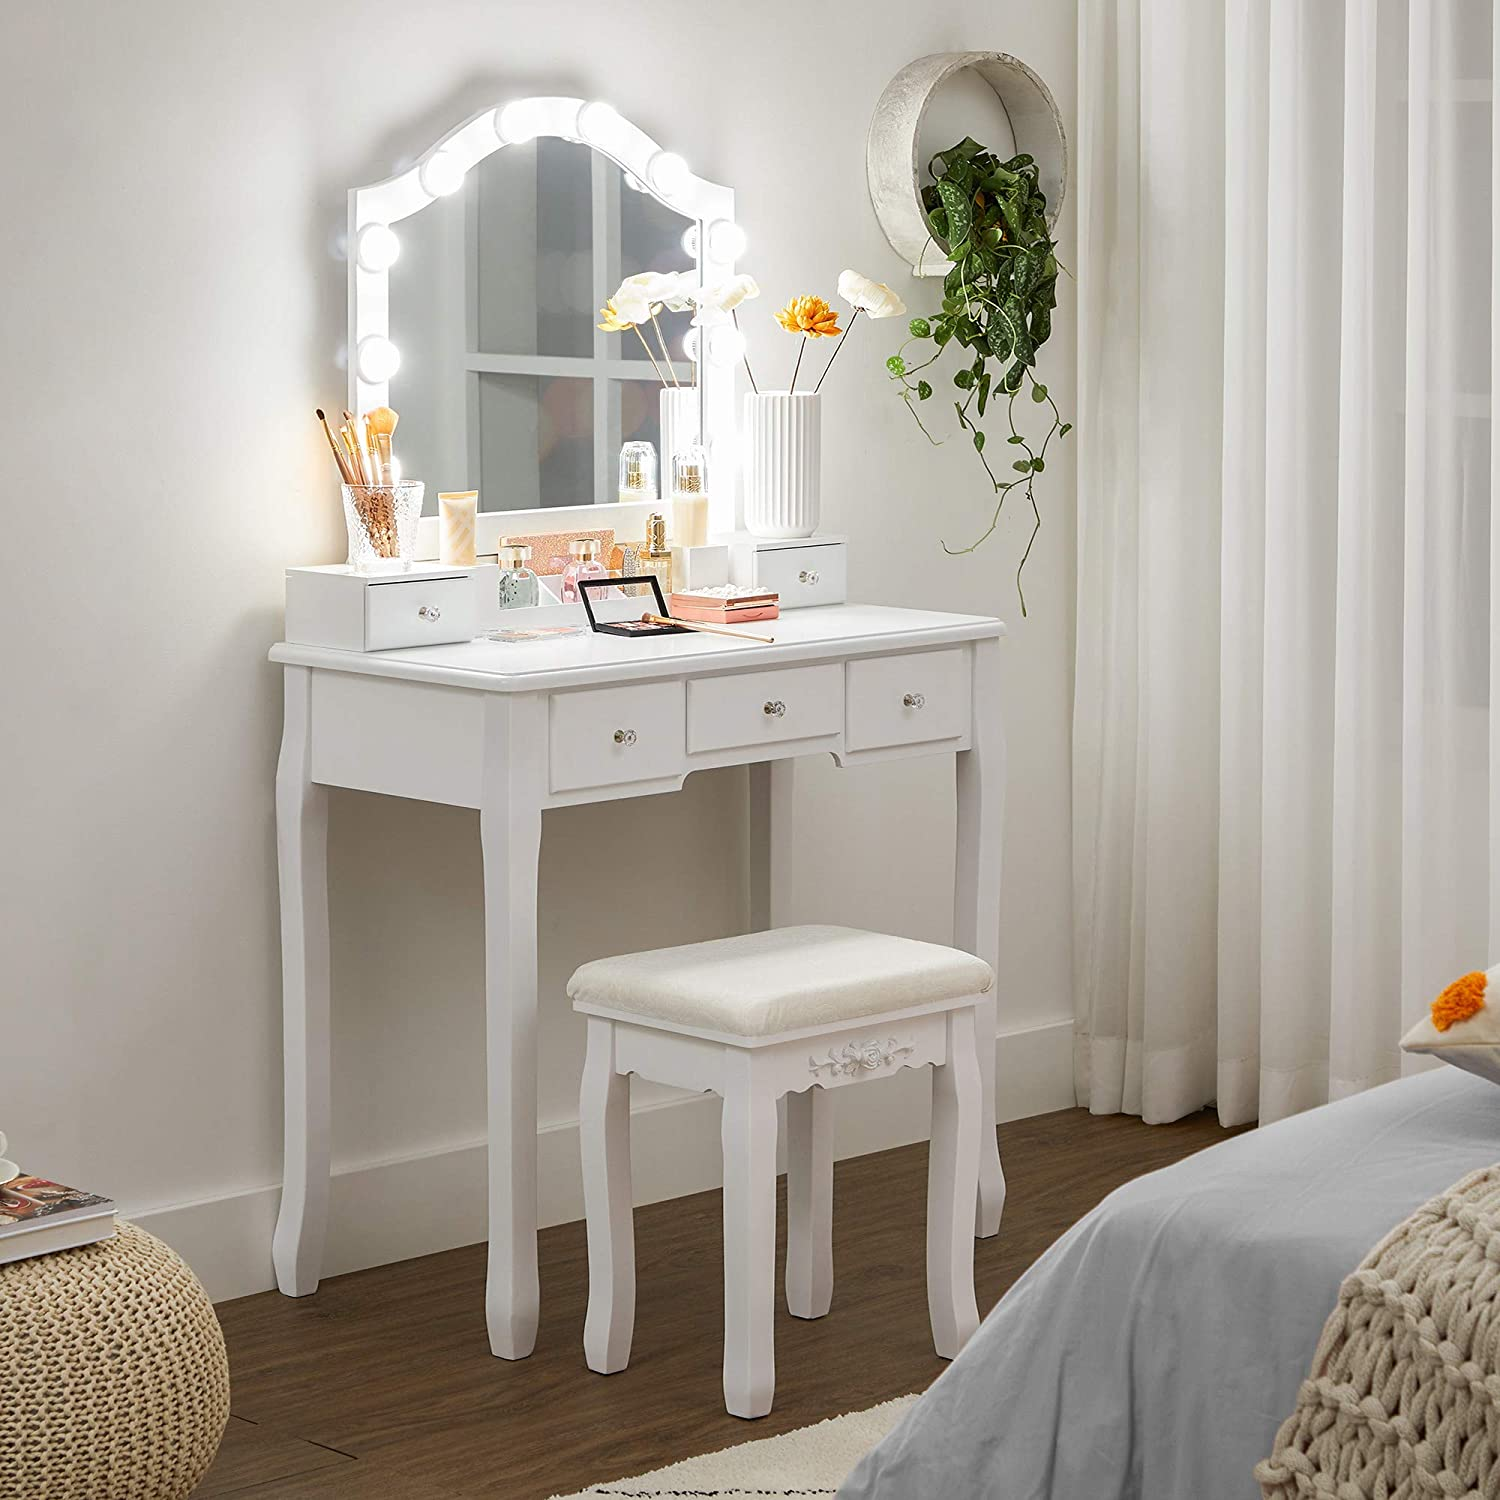 1 Drawer Divider Makeup Table Set with Cushioned Stool 5 Drawers for Bedroom VASAGLE Dressing Table Set 6-Slot Removable Organiser 10 Dimmable Light Bulbs Gift Idea White RDT191W01